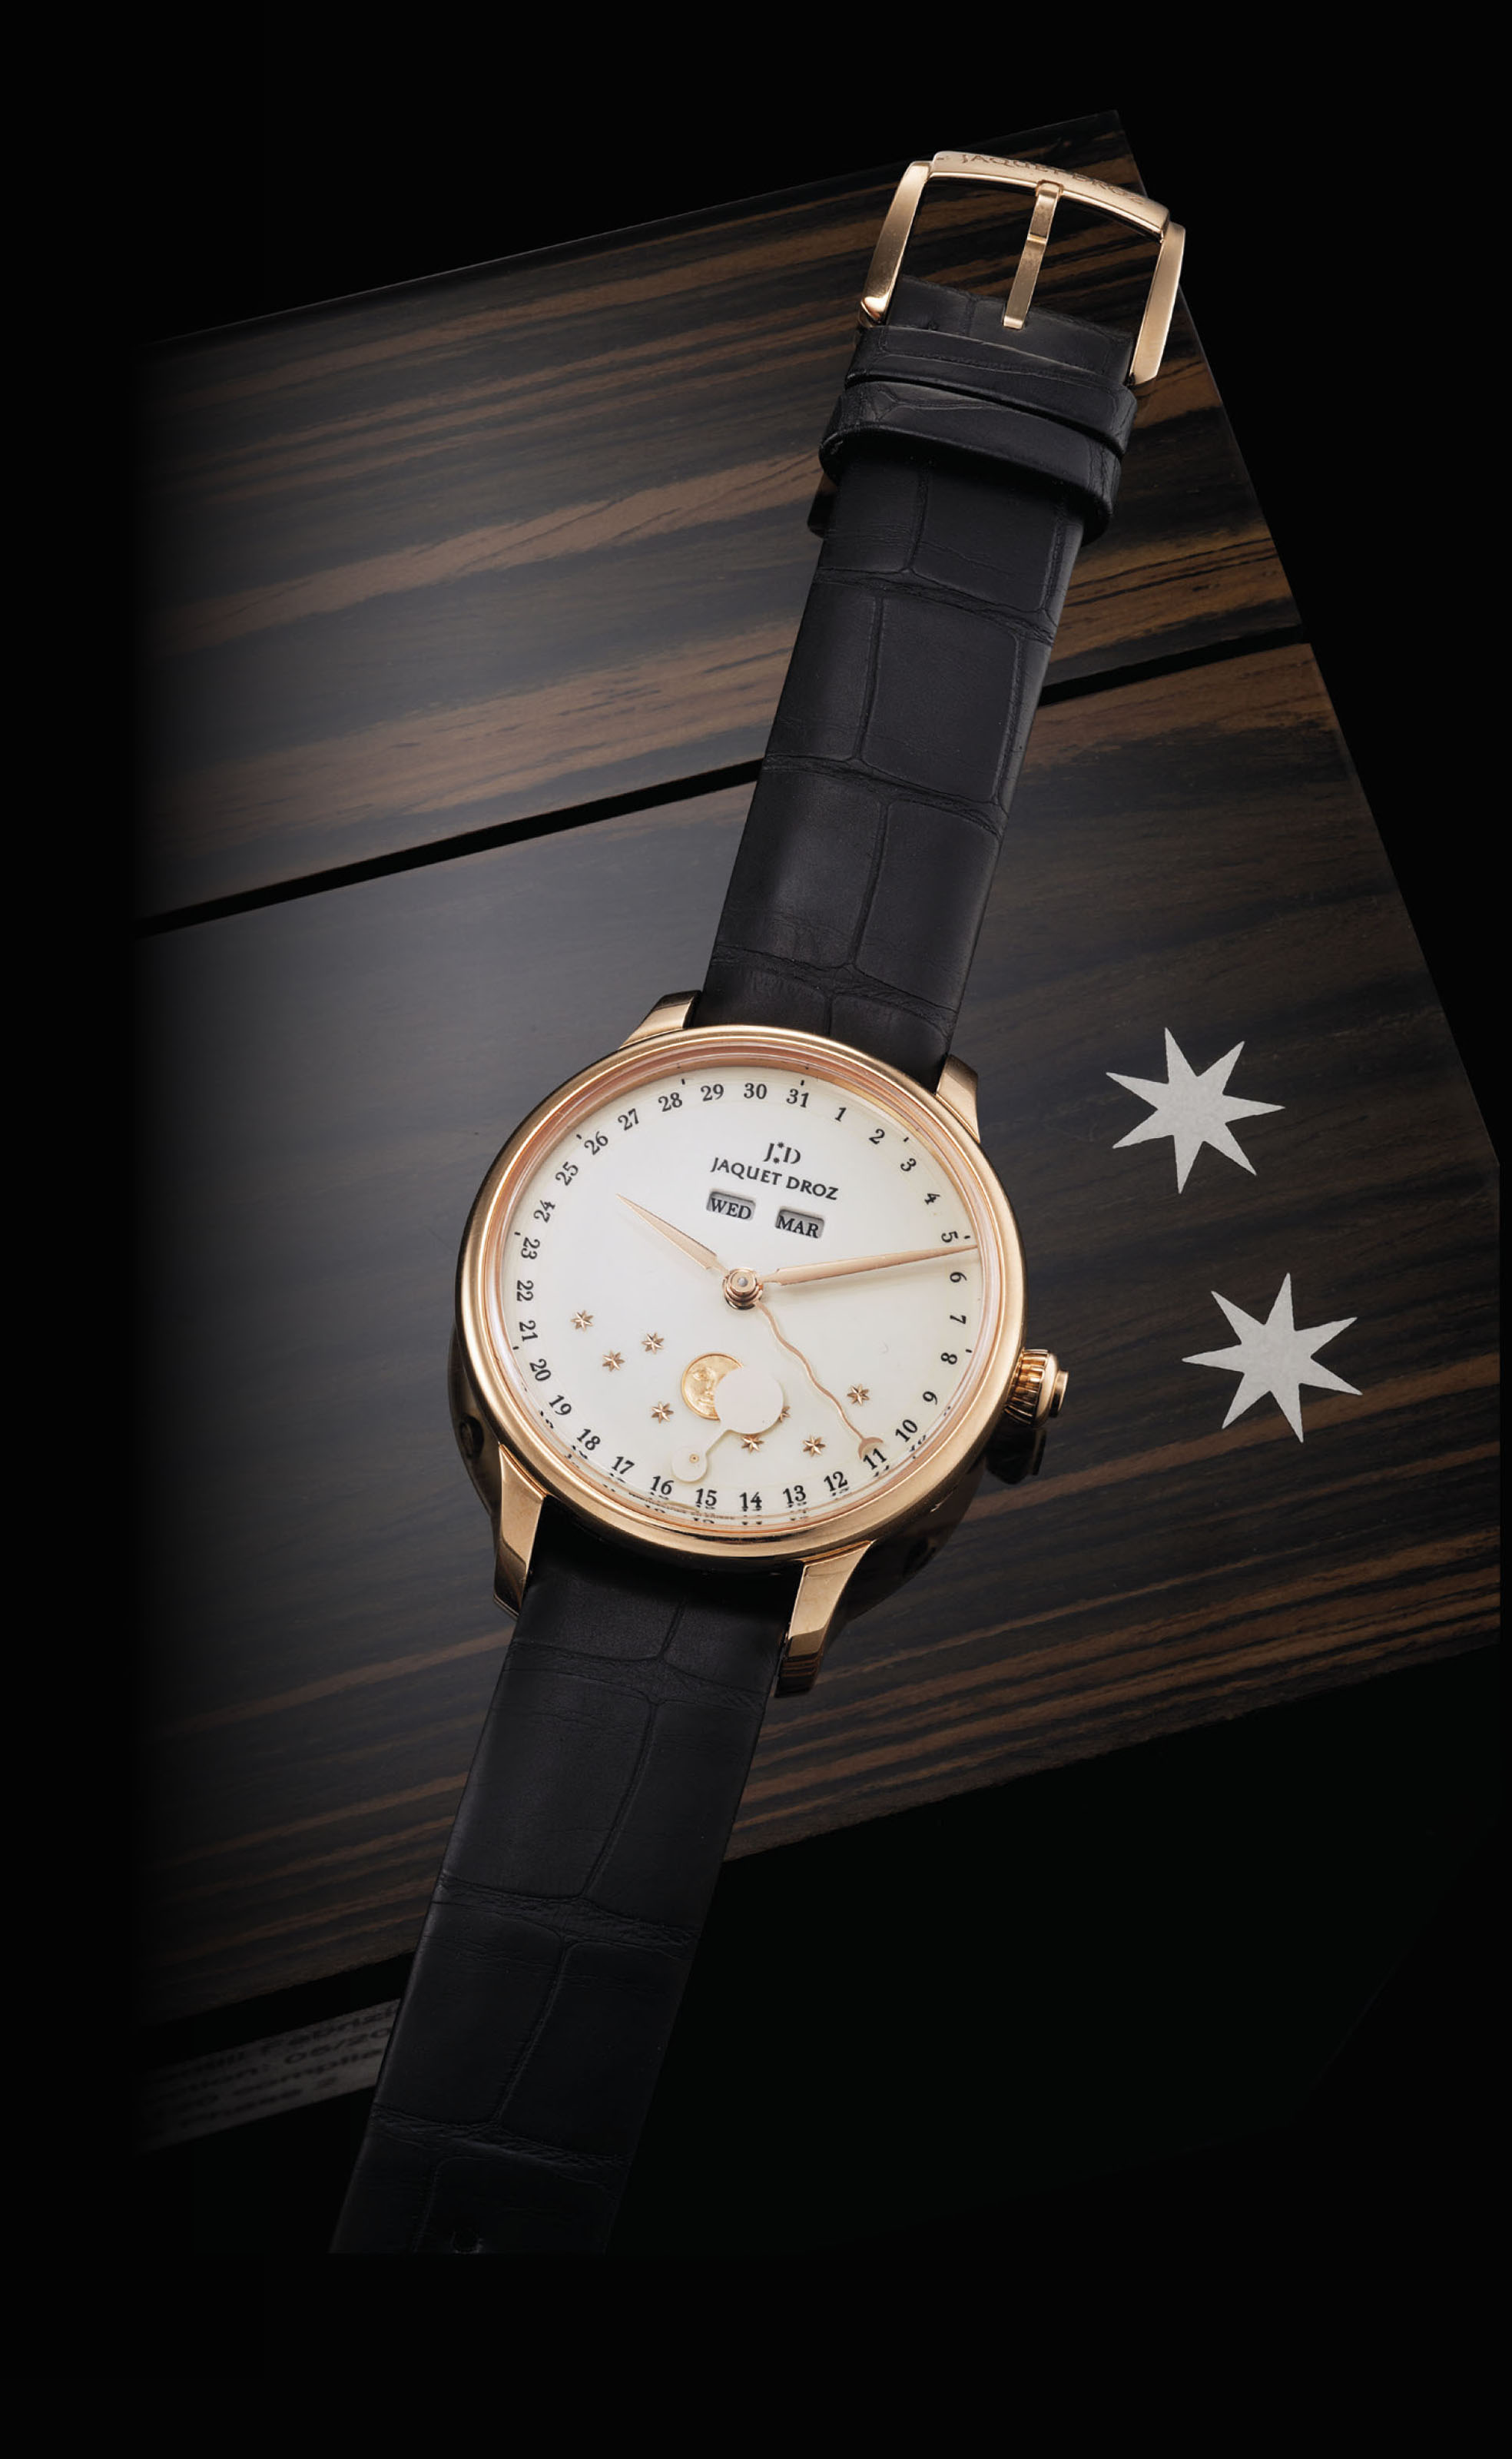 JAQUET DROZ. A FINE 18K PINK GOLD AUTOMATIC TRIPLE CALENDAR WRISTWATCH WITH RETROGRADE MOON PHASES AND GRAND FEU ENAMEL DIAL